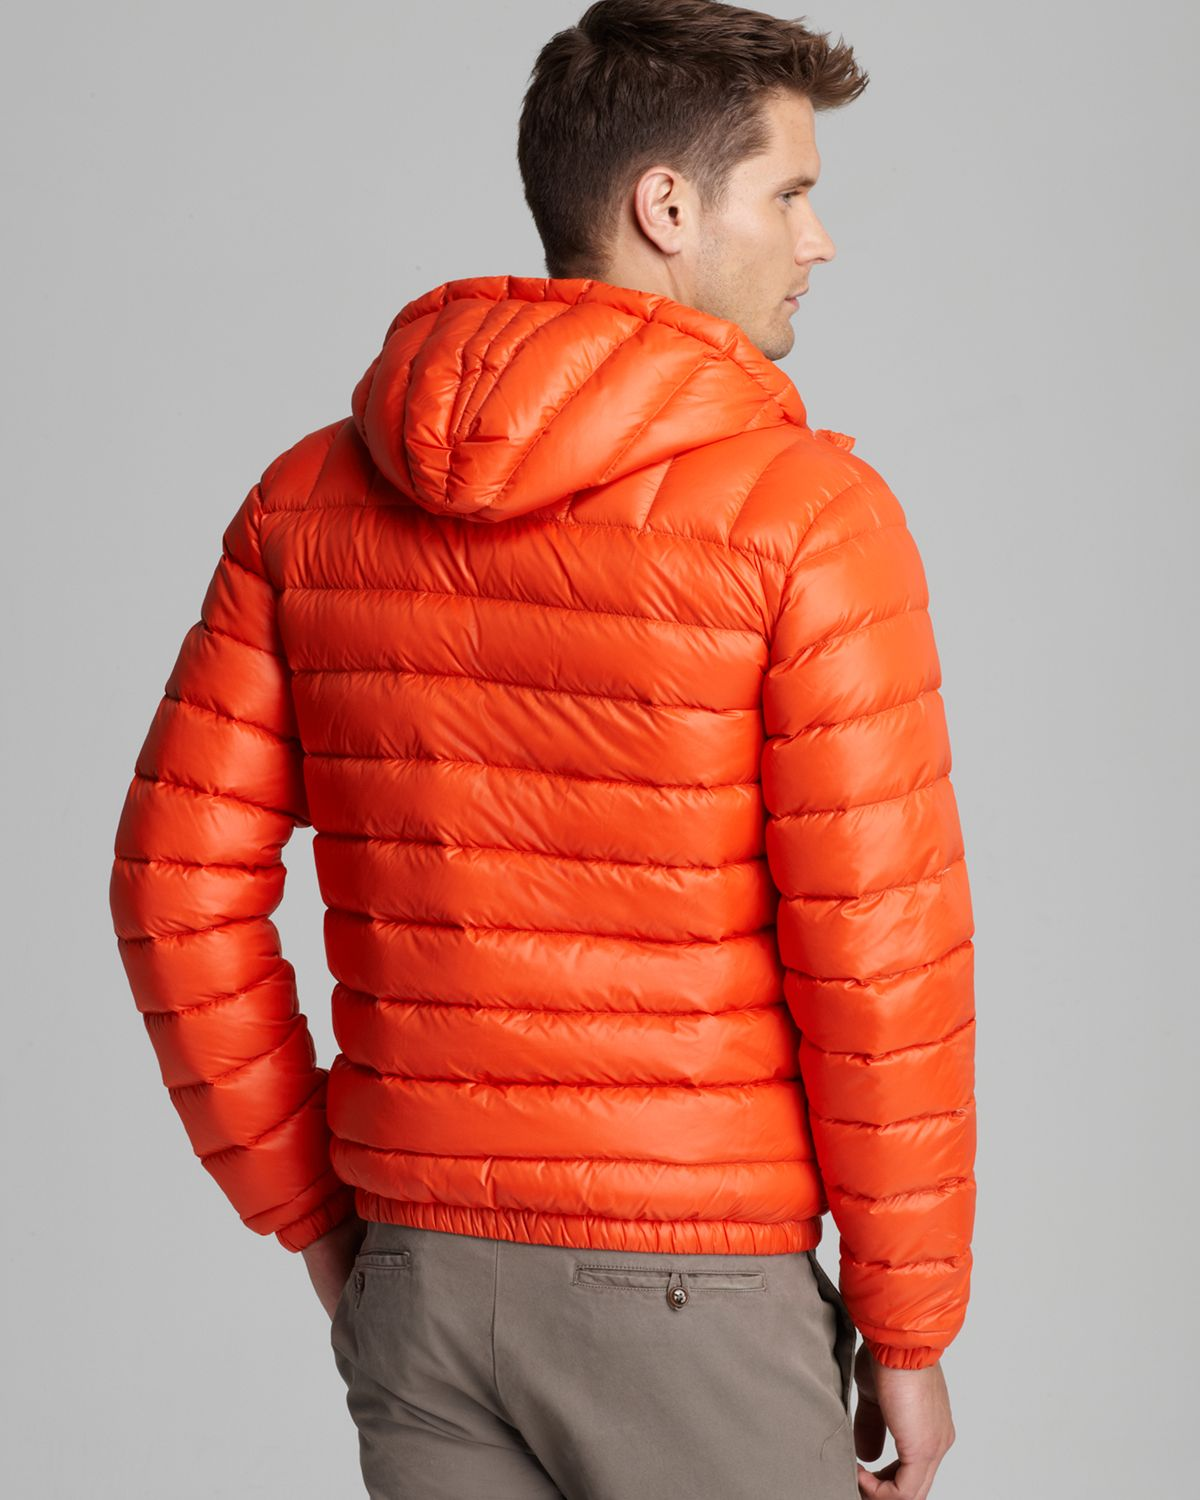 Lyst Lacoste Featherweight Packable Down Jacket In